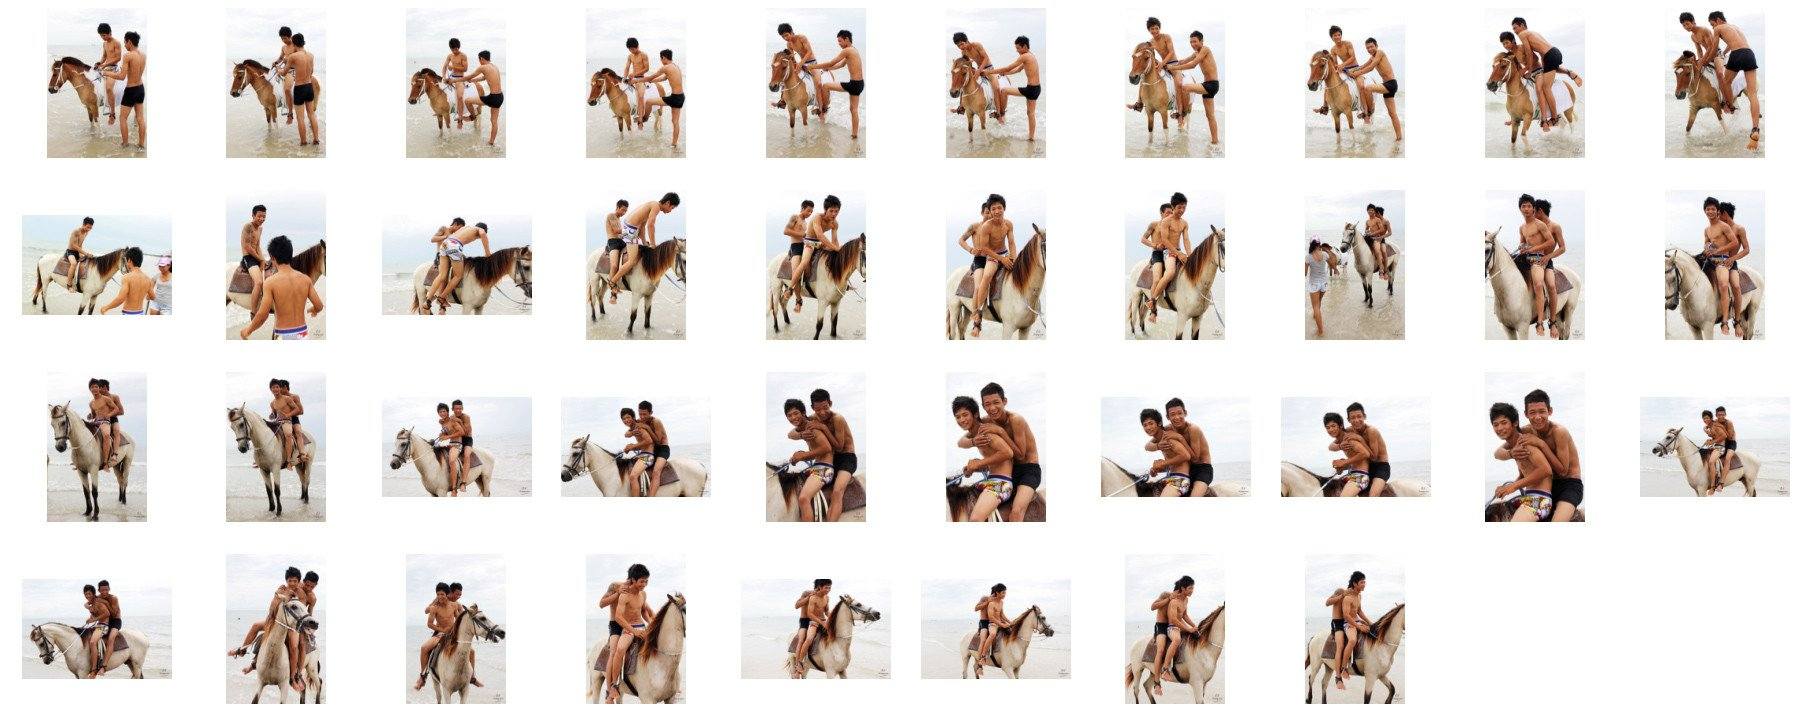 David and Thaksin in Shorts Riding Double with Saddle on Buckskin Horse, Part 3 - Riding.Vision